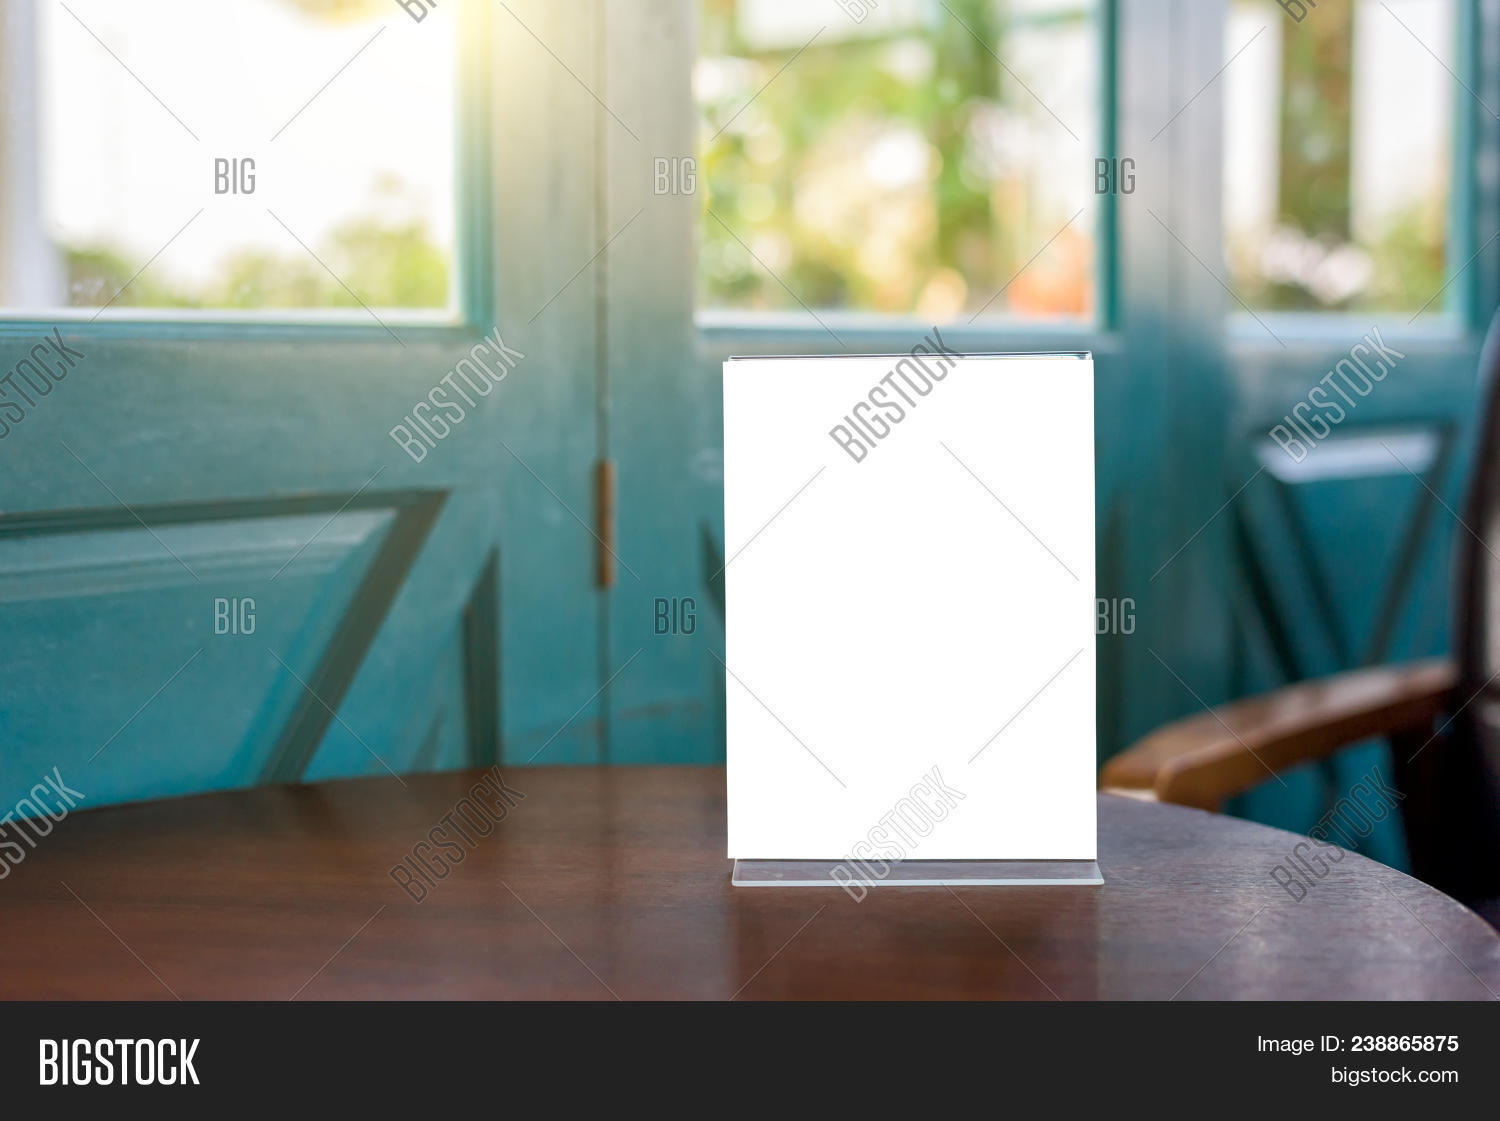 Table Tent Blank Menu Image Photo Free Trial Bigstock - Wooden table tents